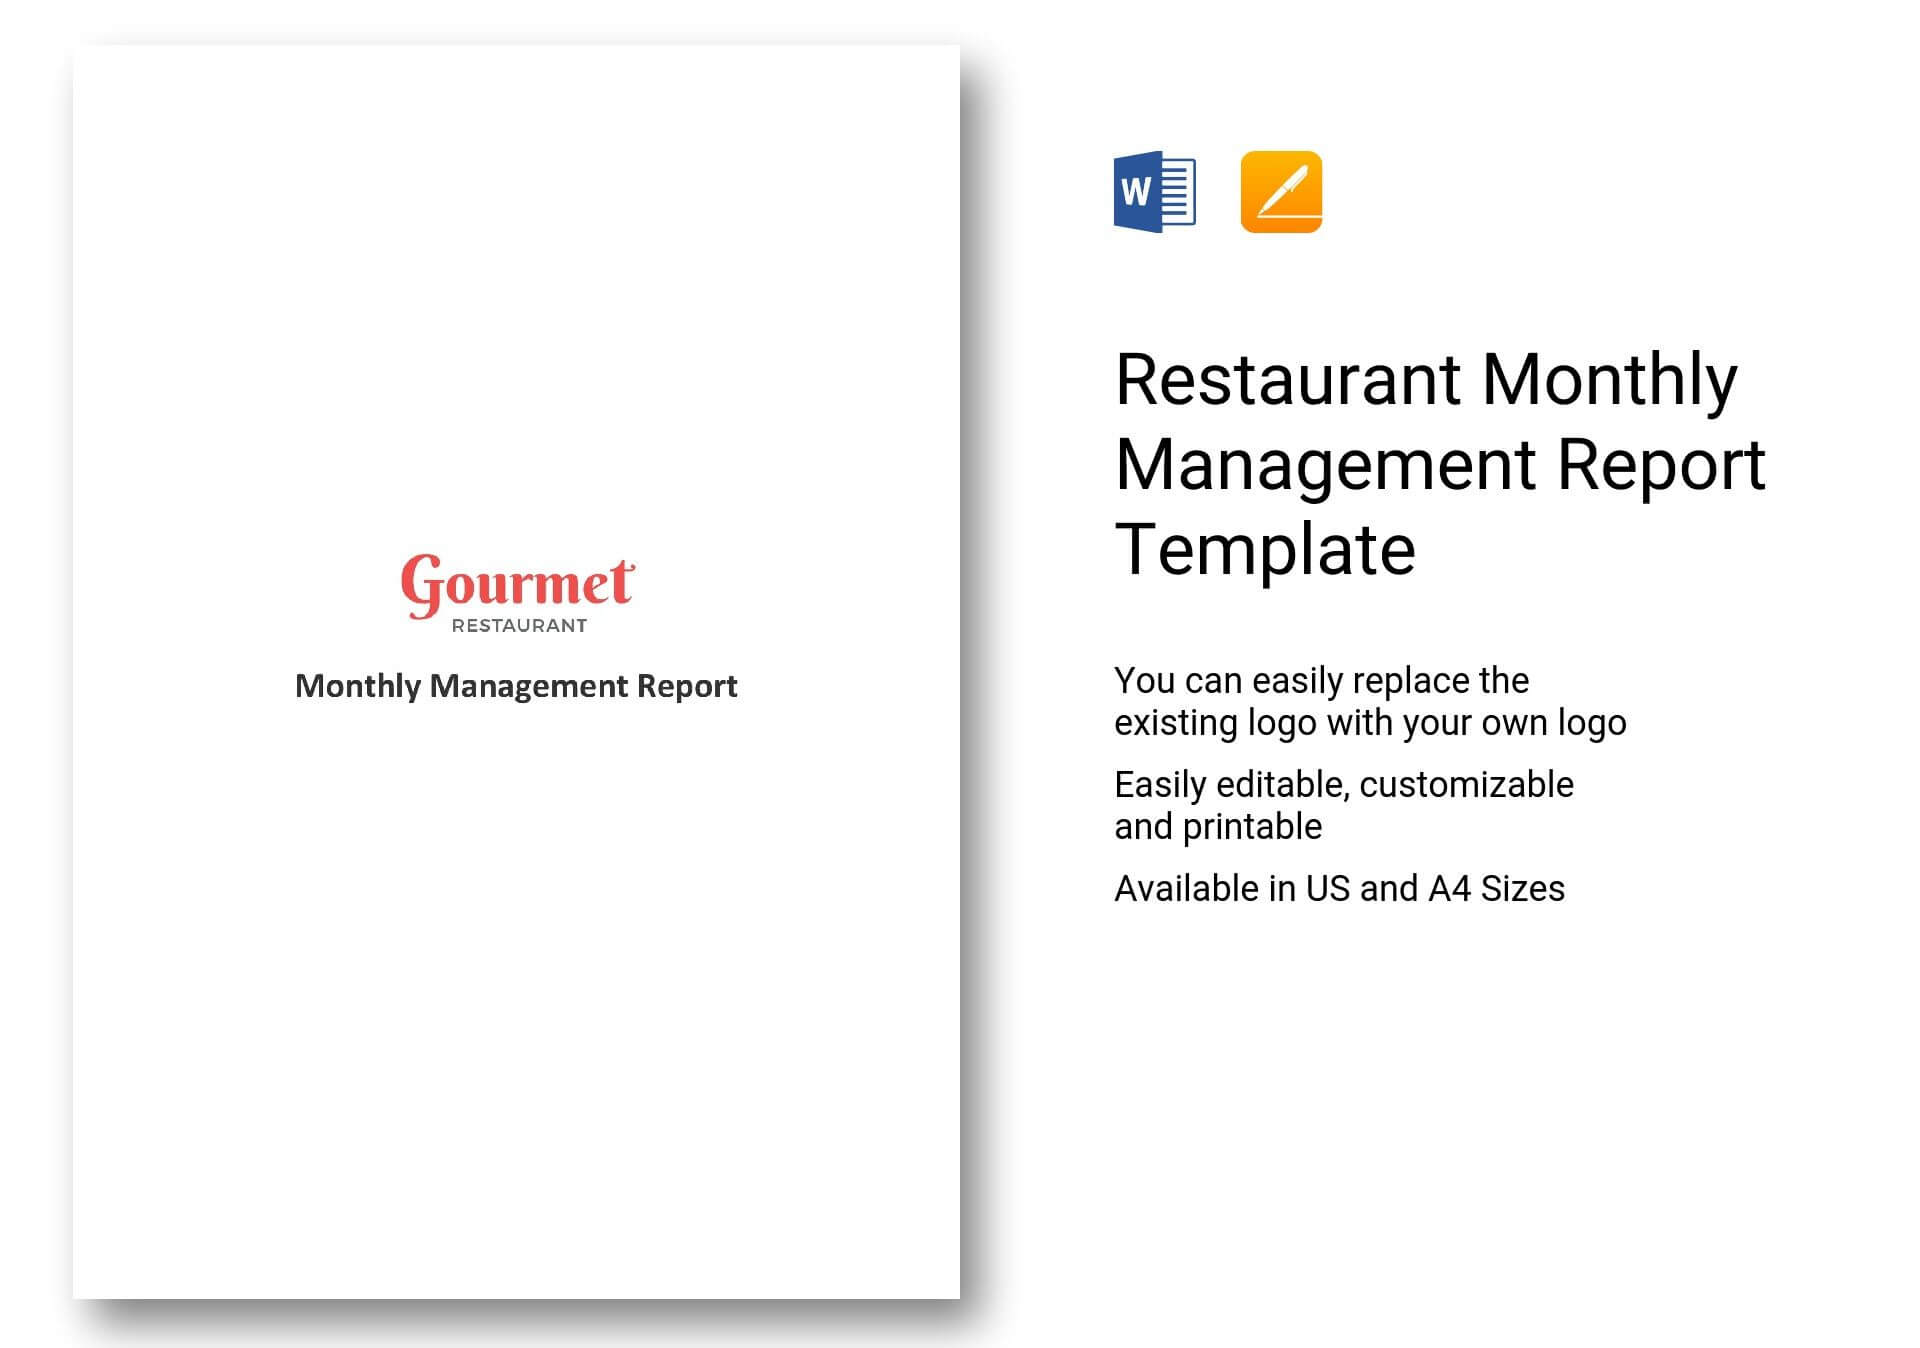 Restaurant Monthly Management Report Template In Word, Apple within It Management Report Template